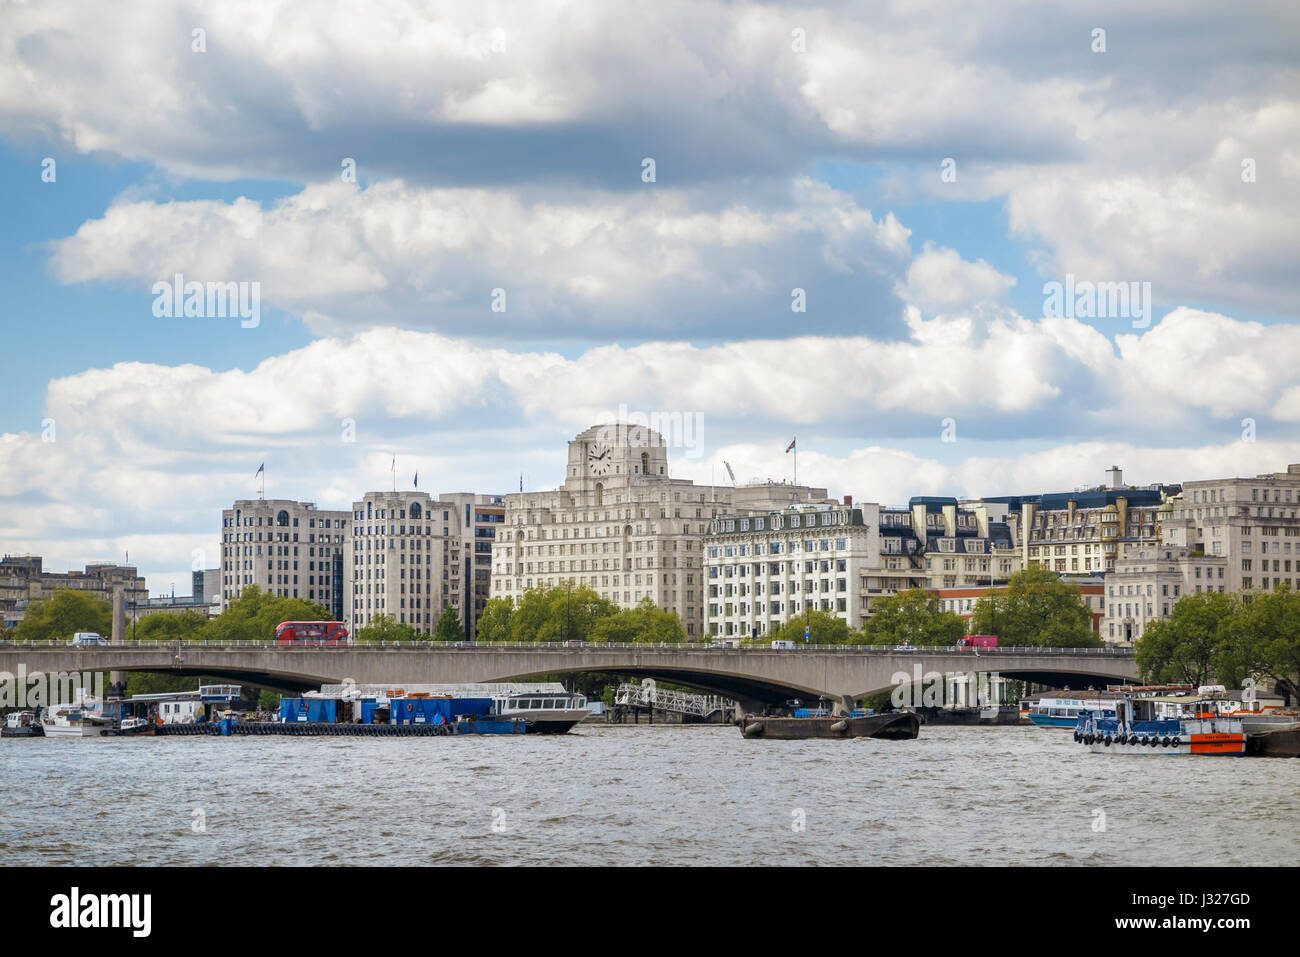 revolving chair thames christopher knight 80 strand stock photos and images alamy